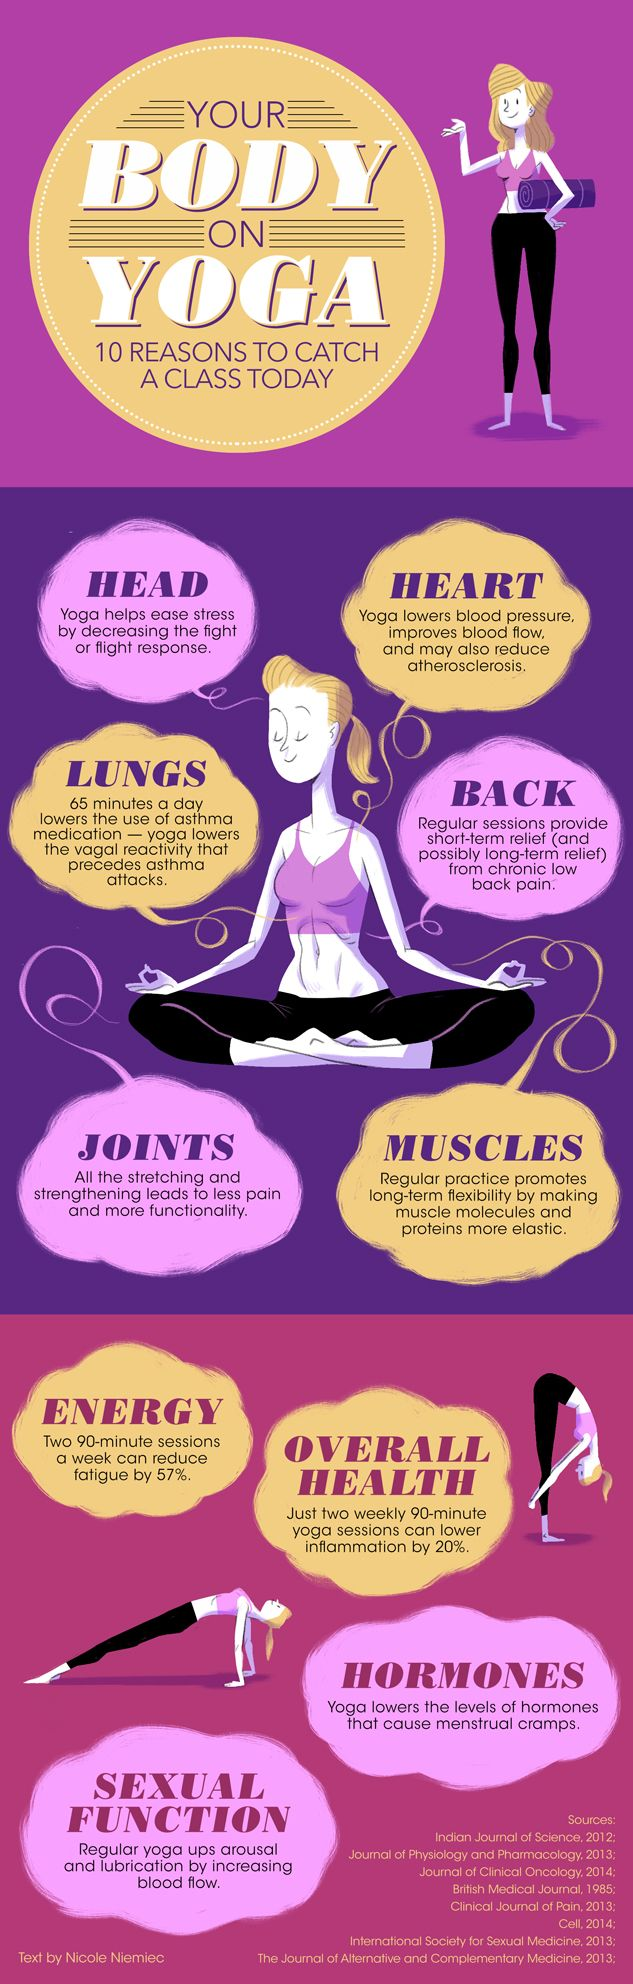 As if we need more reasons to do yoga! Here are some more just in case.